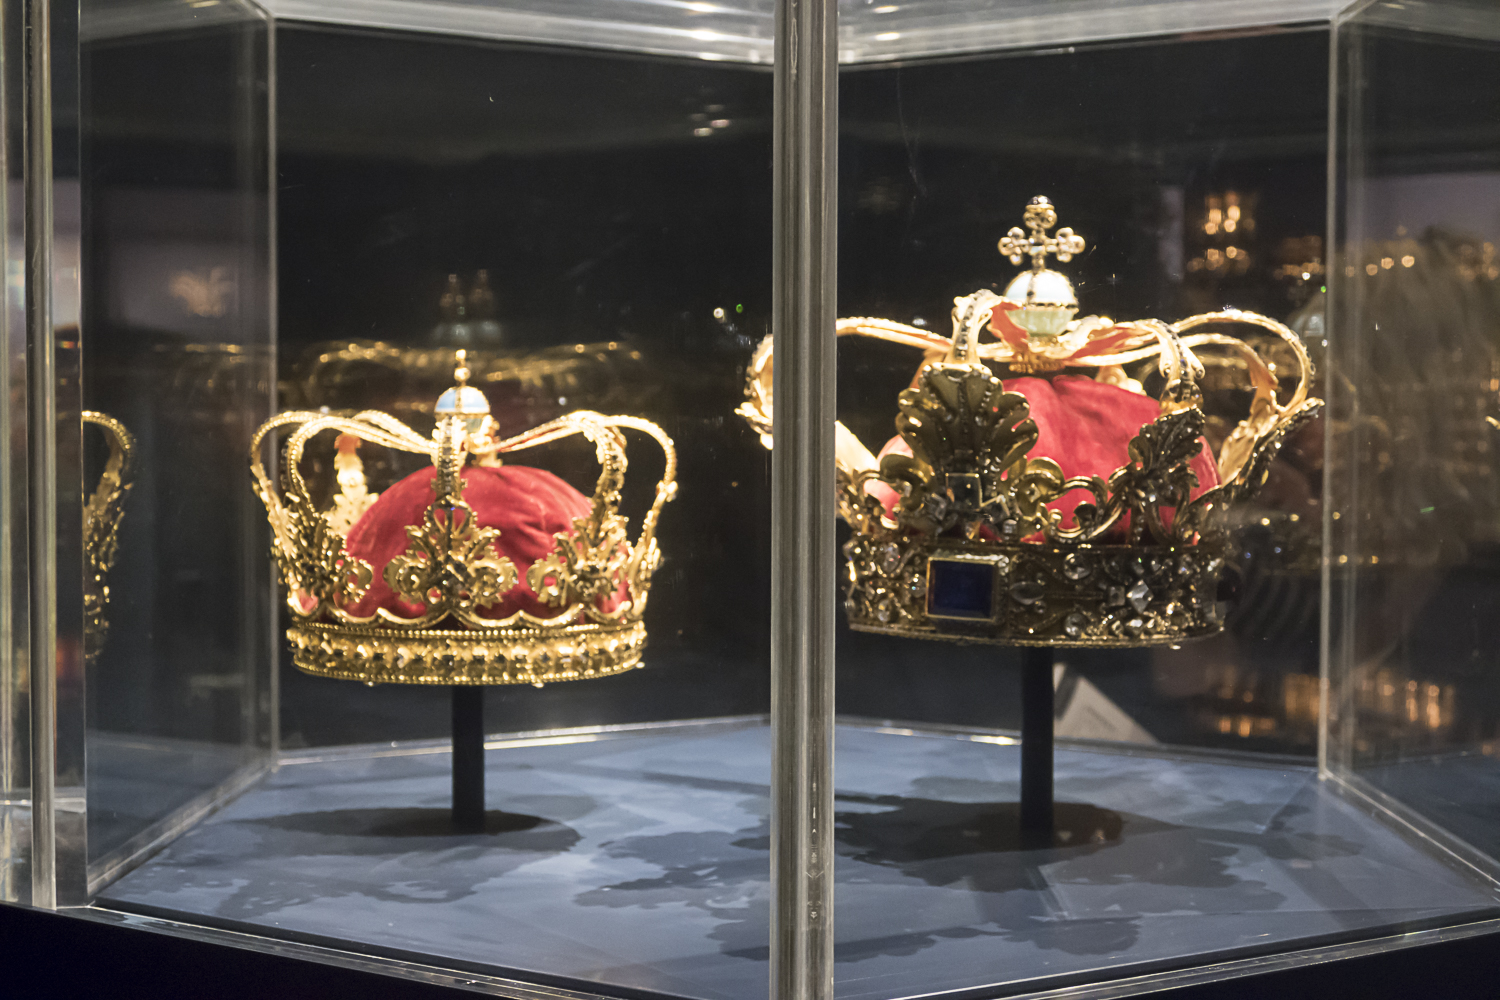 The crown jewels of Denmark